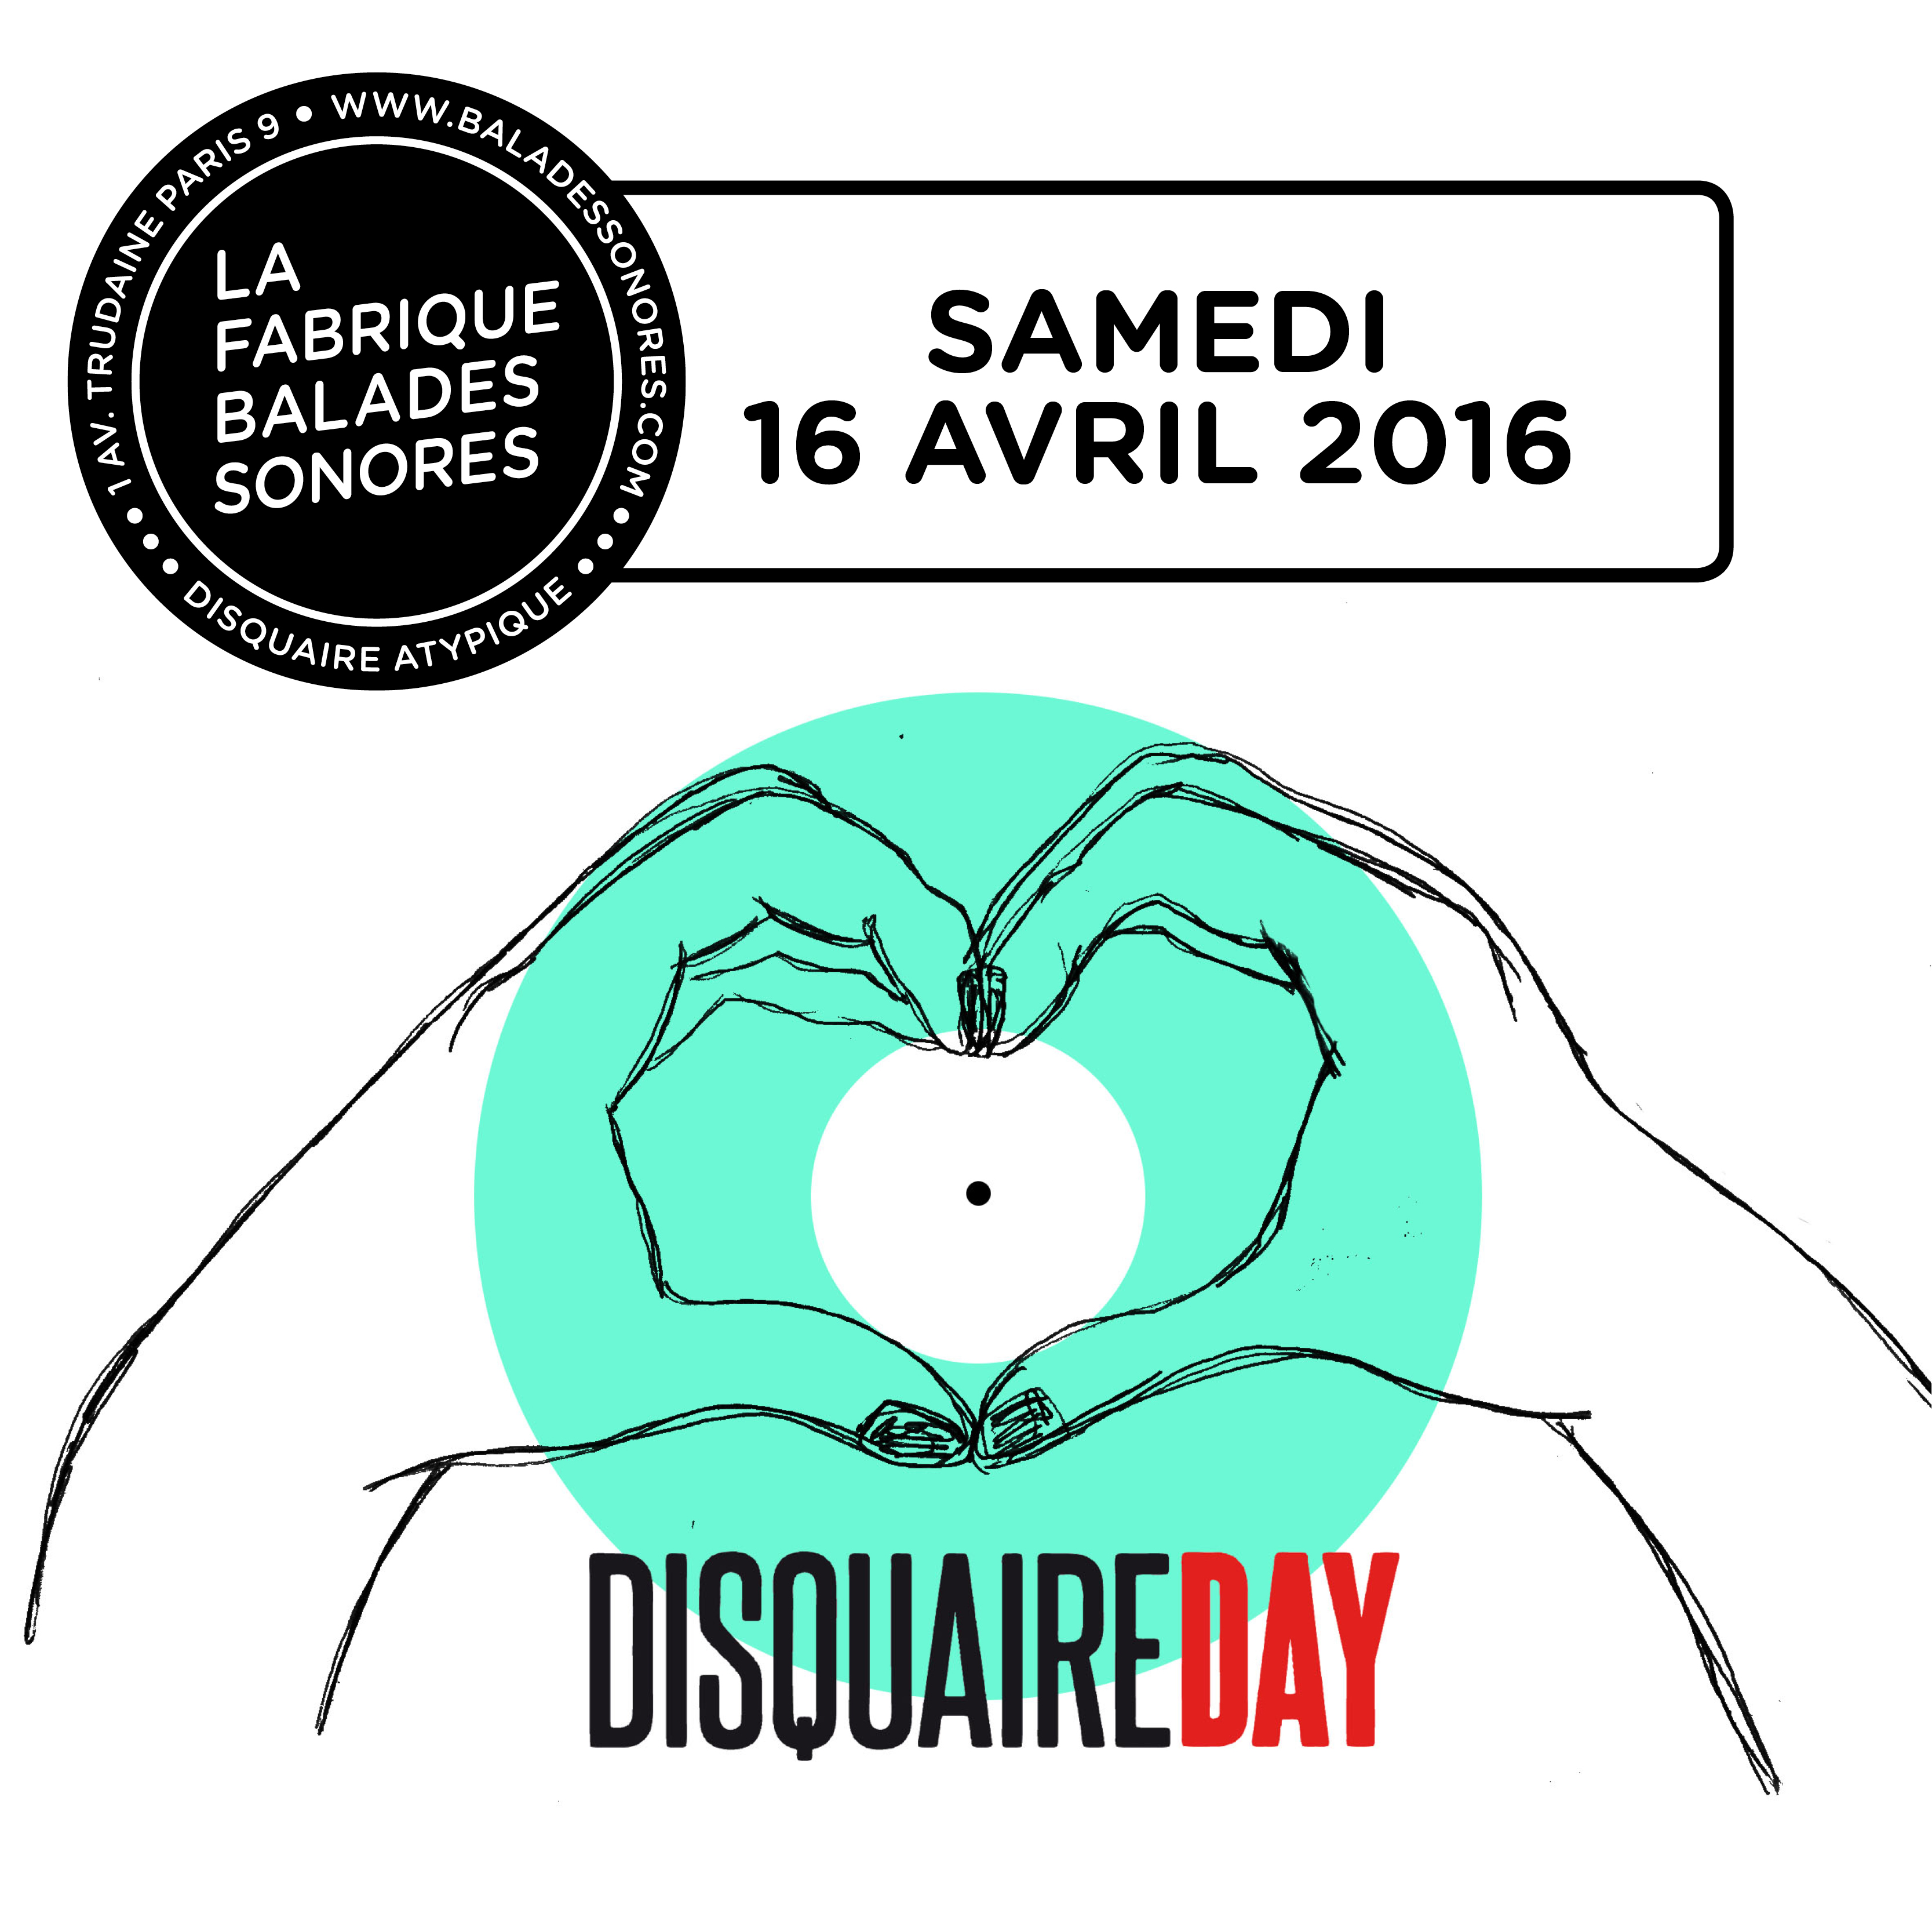 Disquaire day 2016 balades sonores